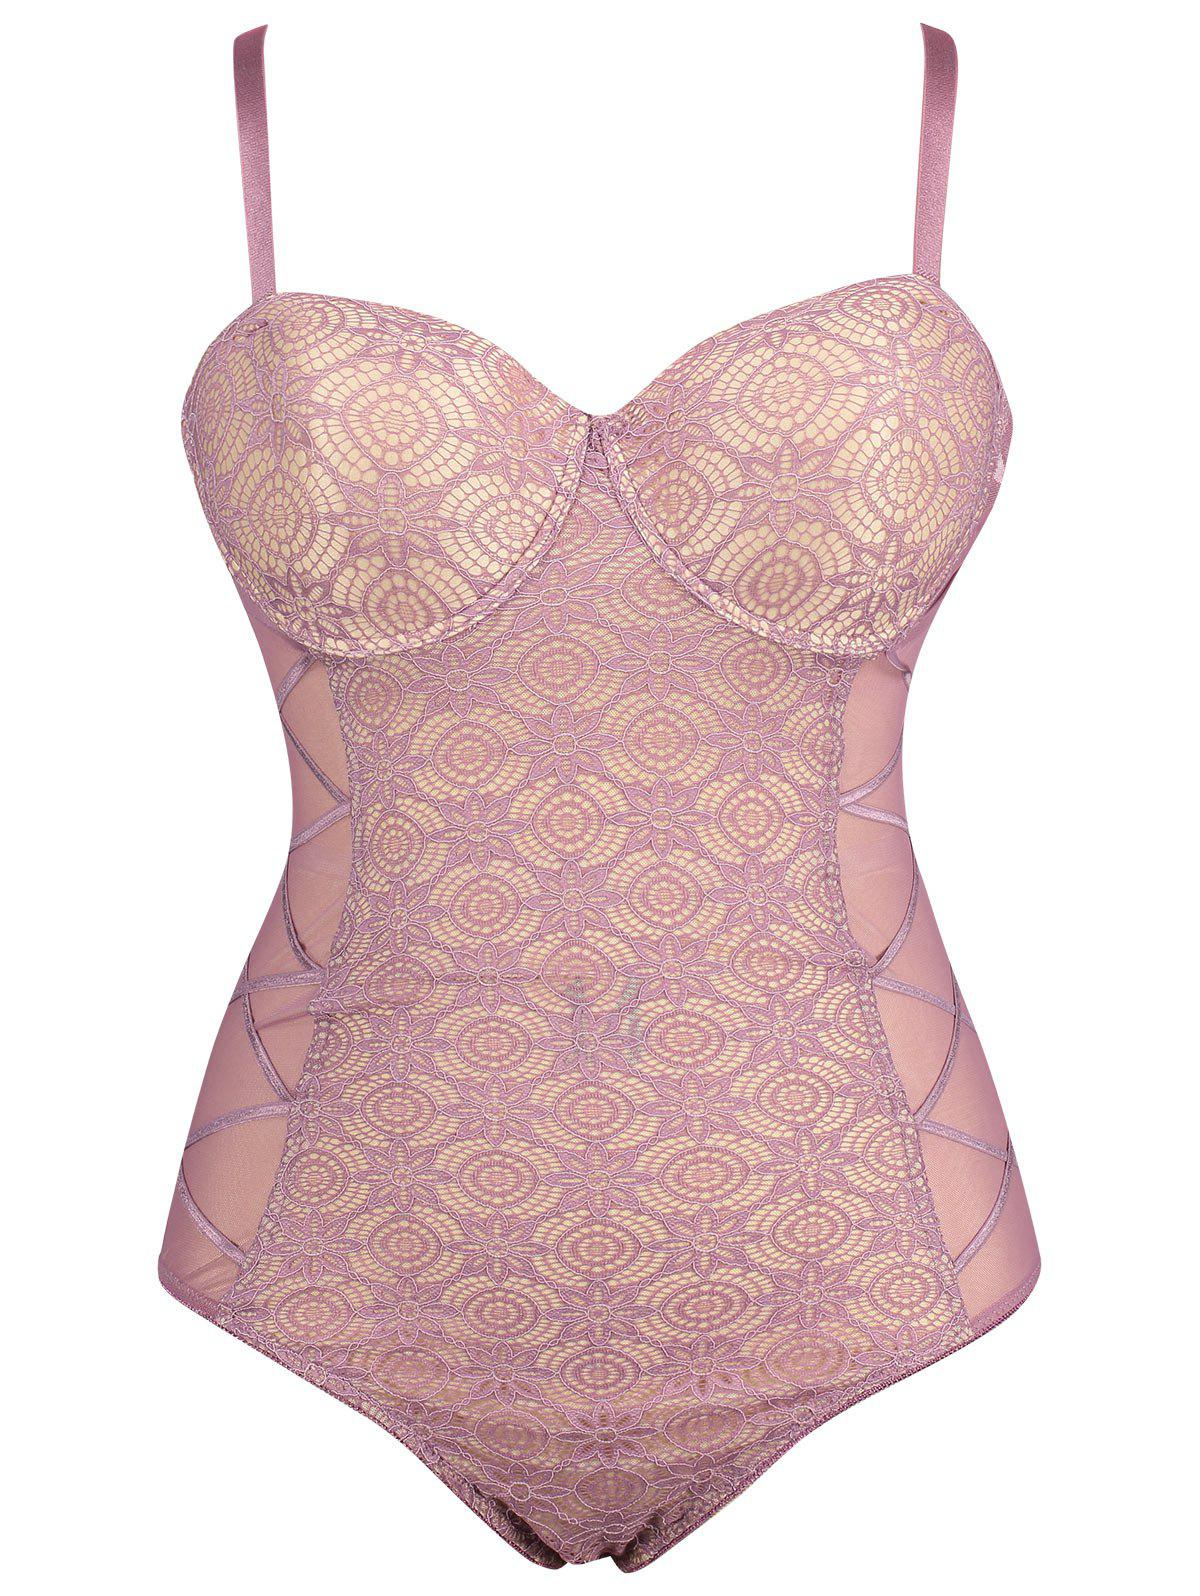 Plus Size Lace Sheer Underwire Slip Teddy - PALE PINKISH GREY XL